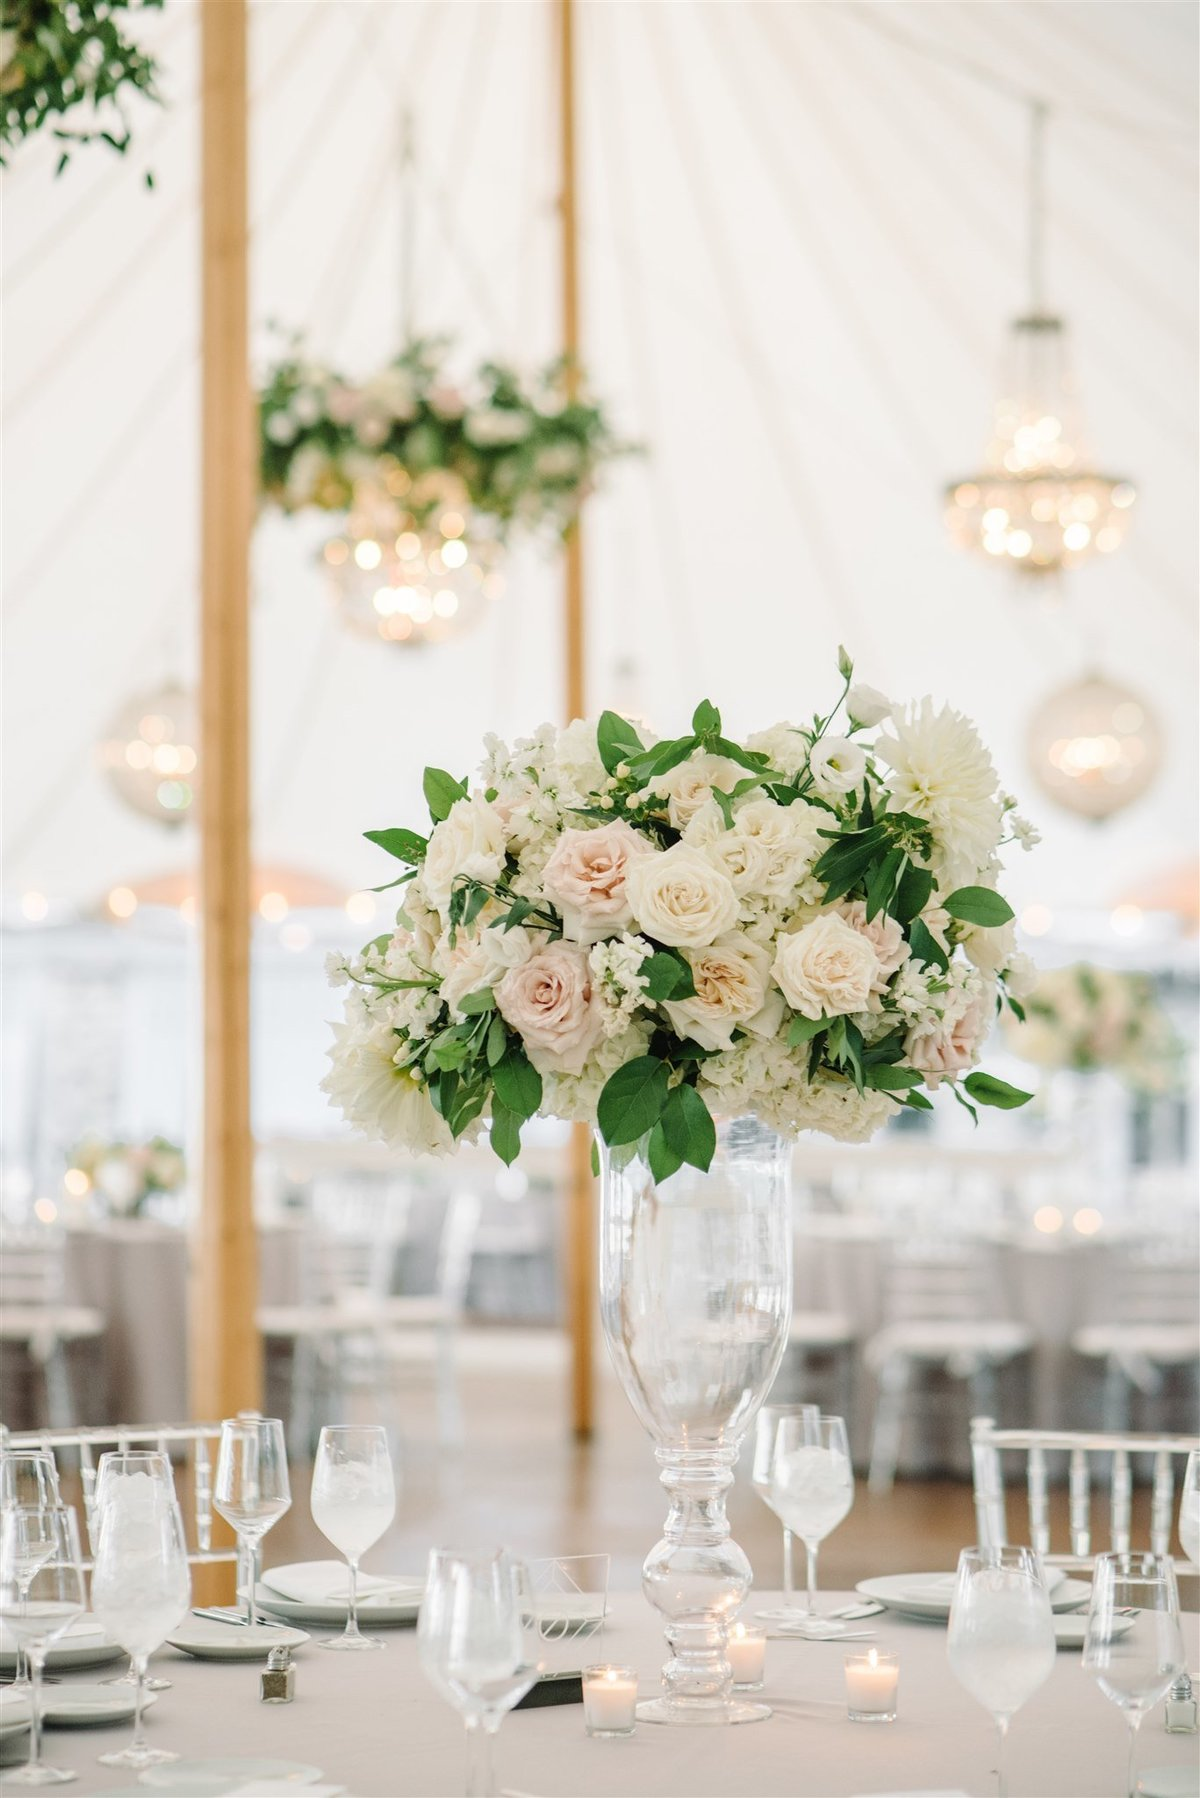 Cape Cod Tented Wedding for Tory and Ugo16